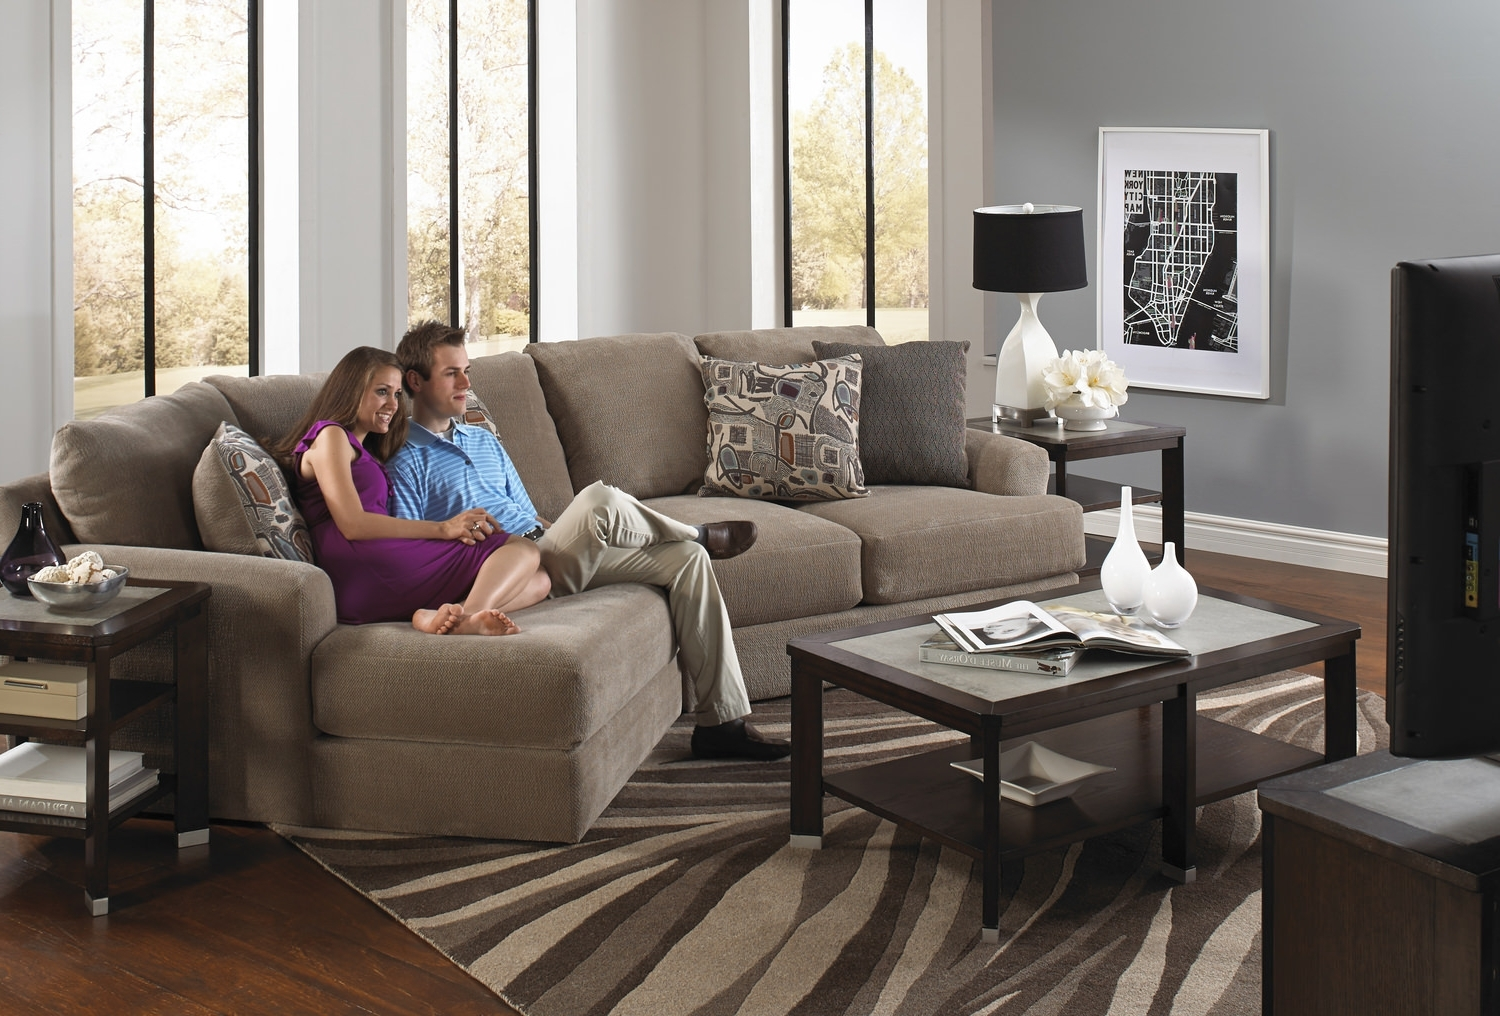 Sectional Sofas Mn Intended For Favorite Duluth Mn Sectional Sofas (View 11 of 20)